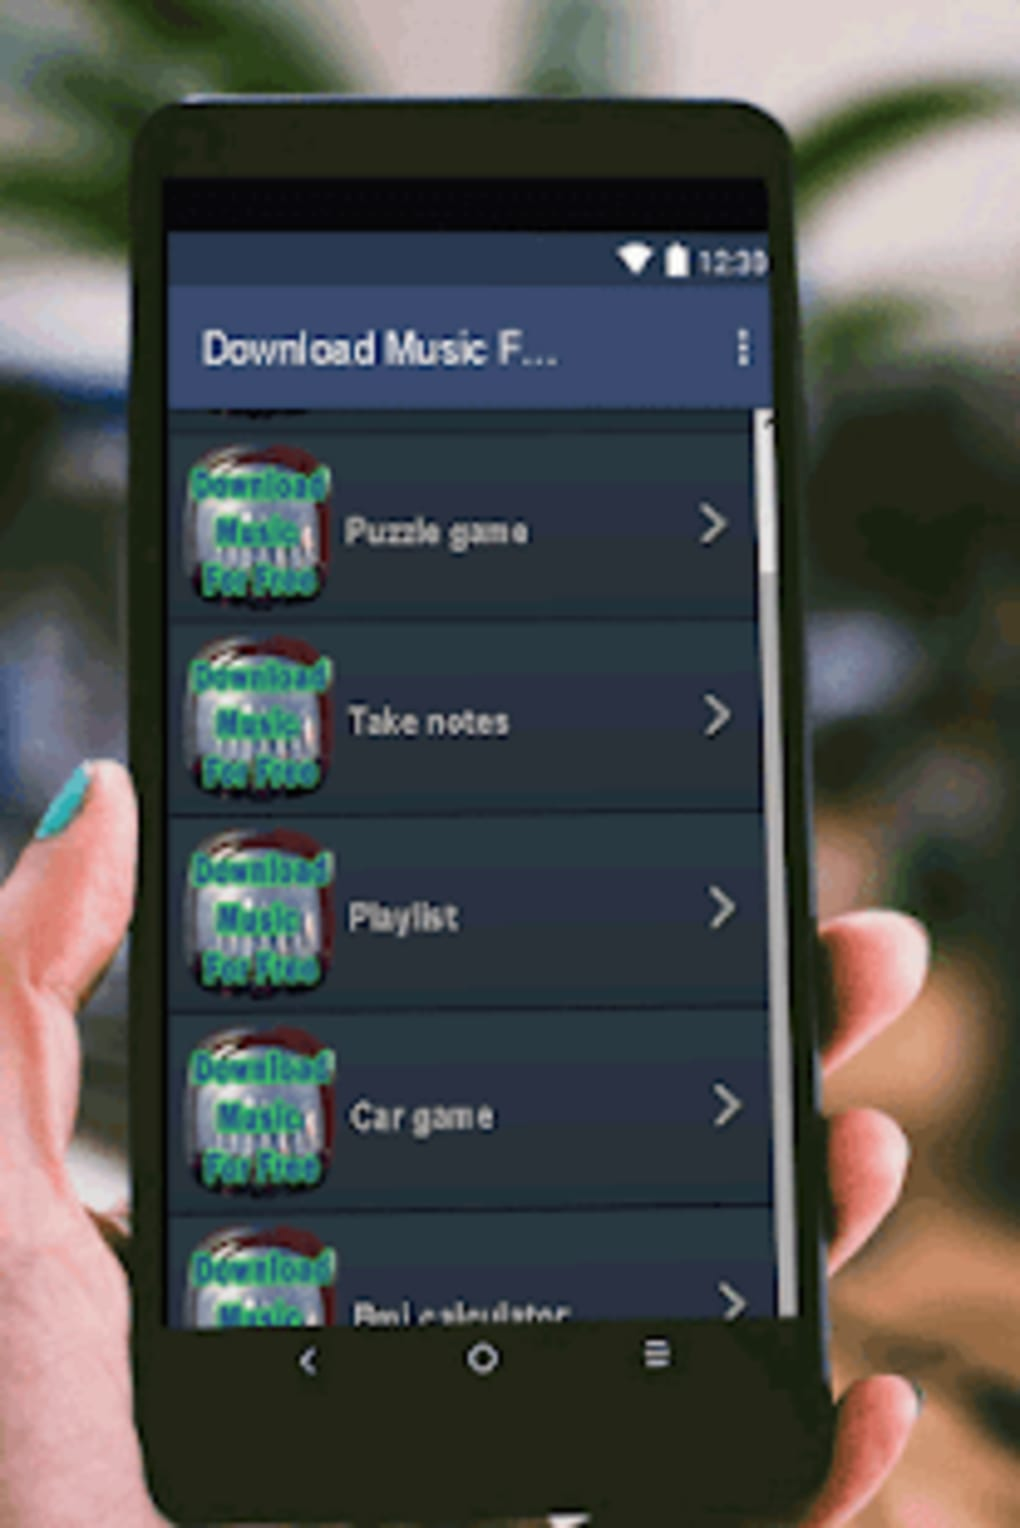 where can i download free music to my android phone